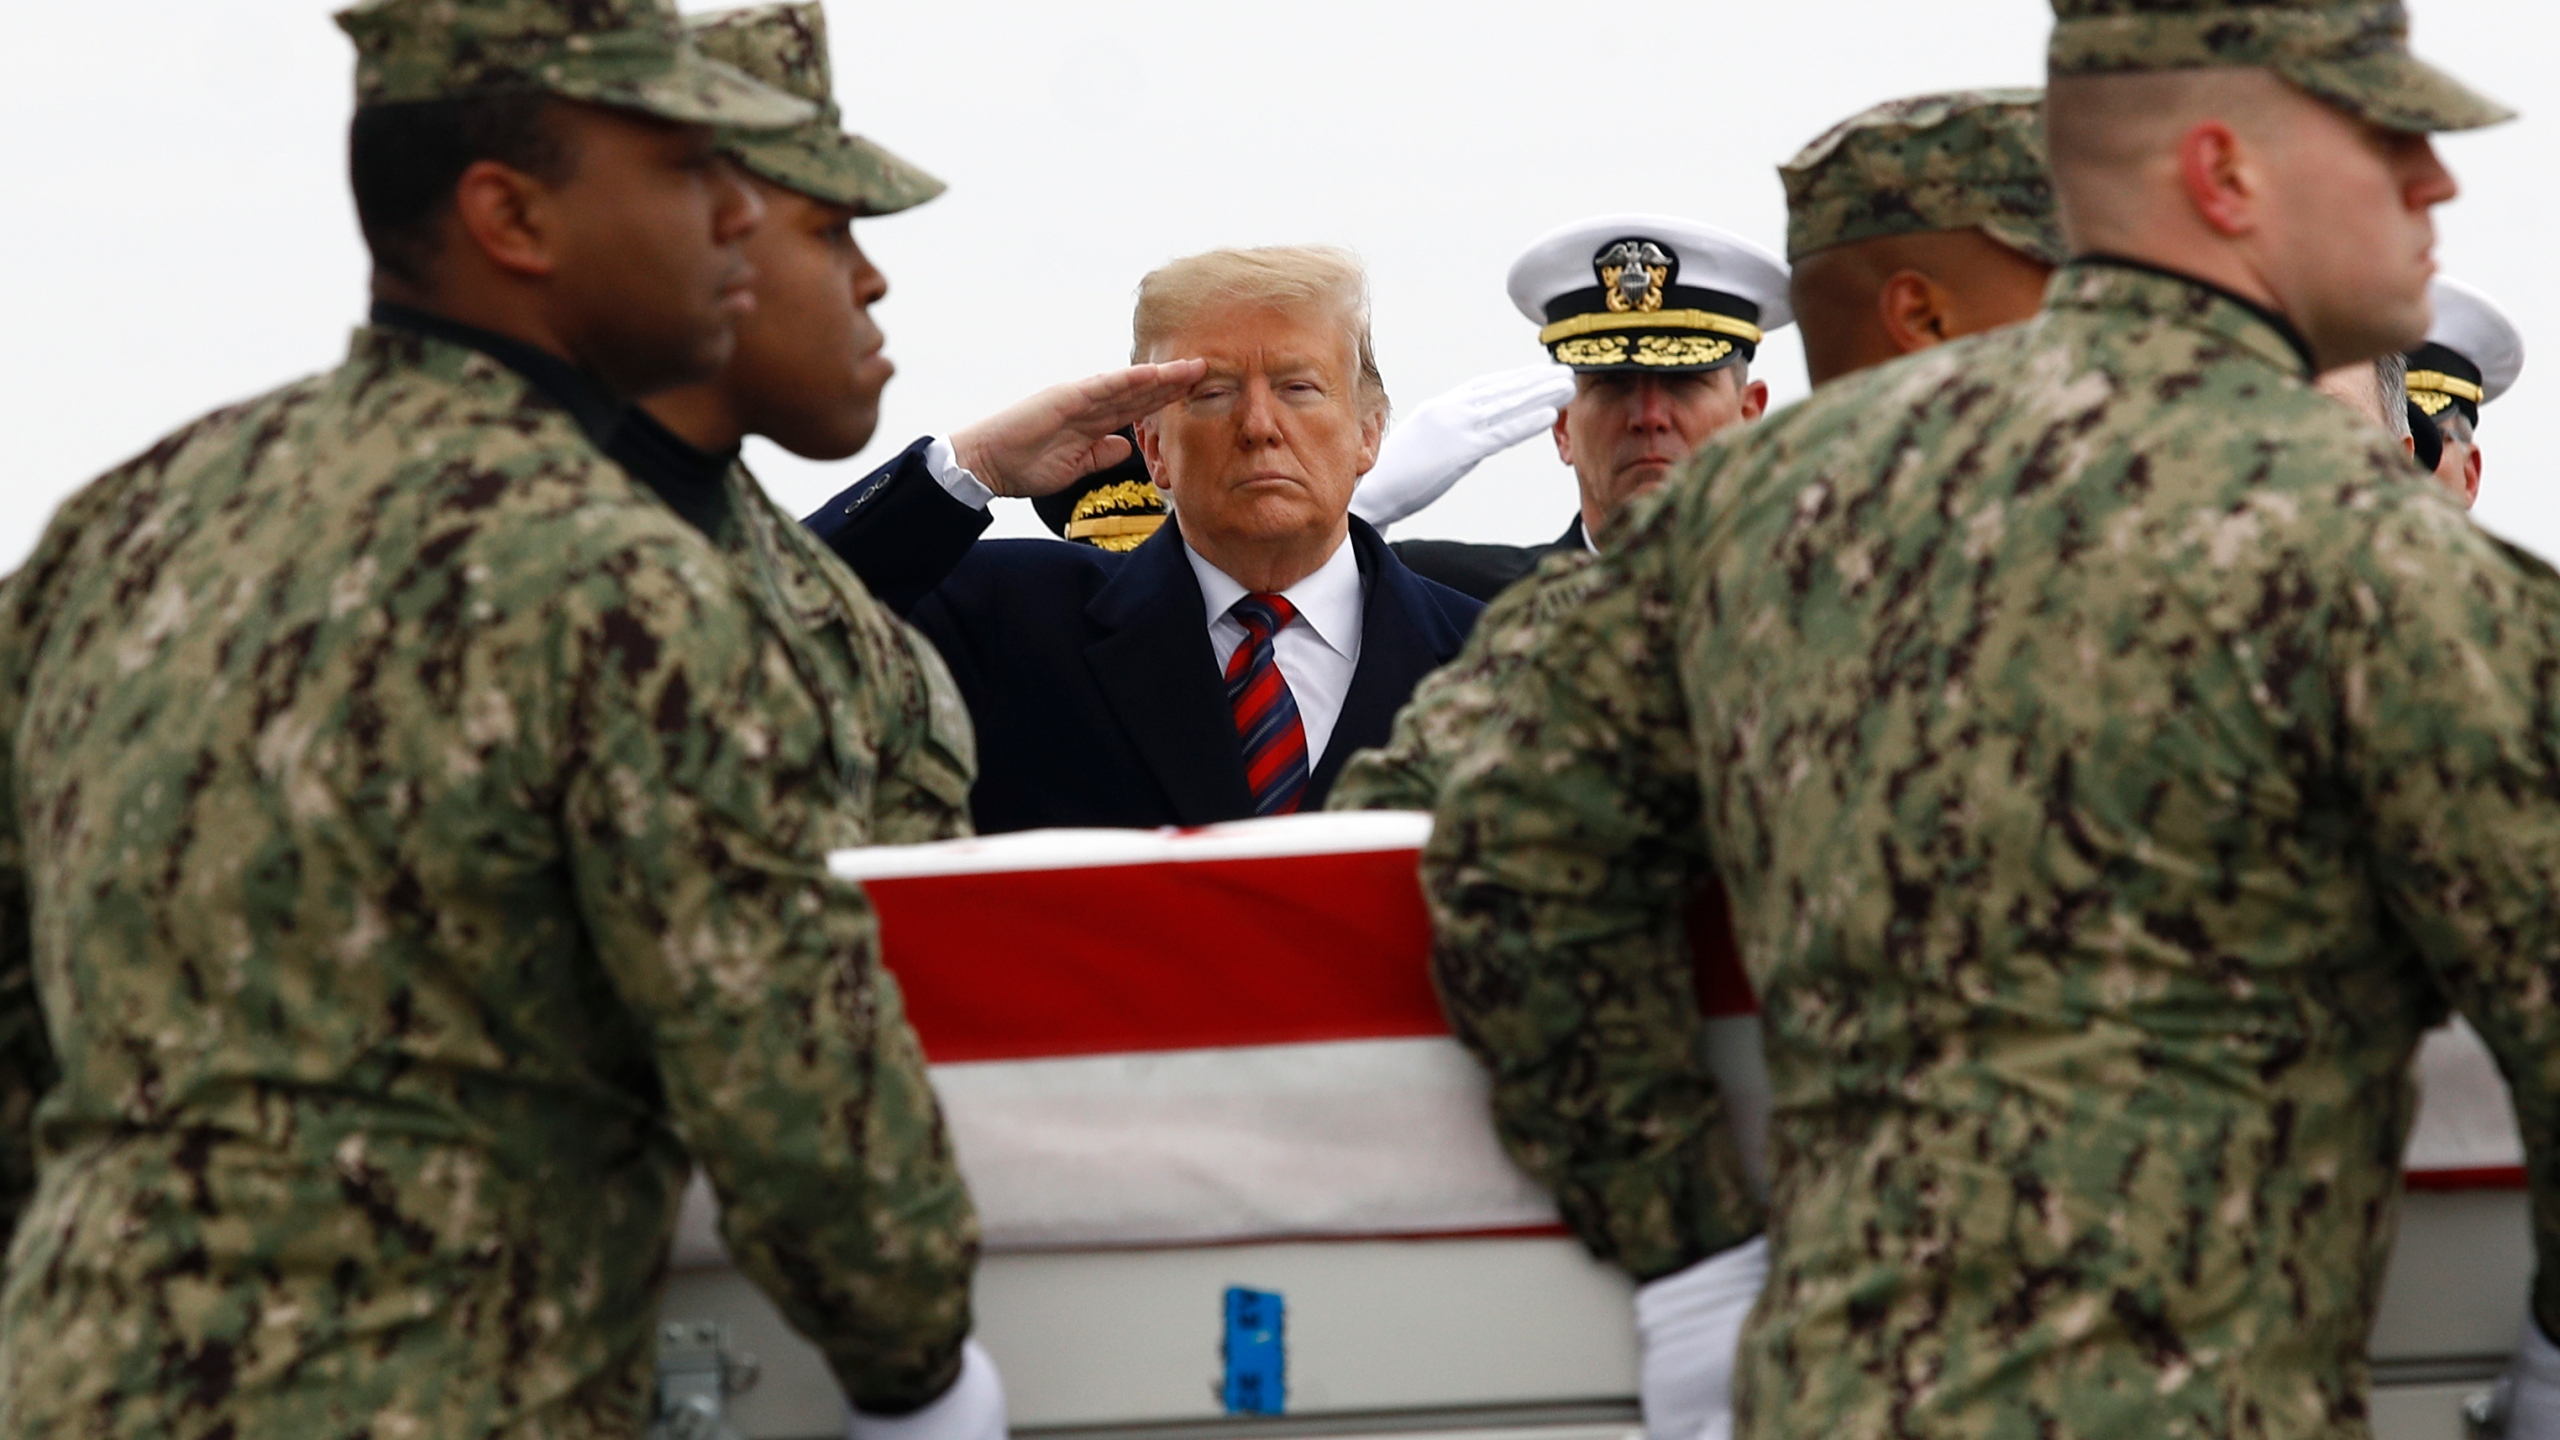 APTOPIX_Trump_Syria_Casualty_Return_83398-159532.jpg32704205